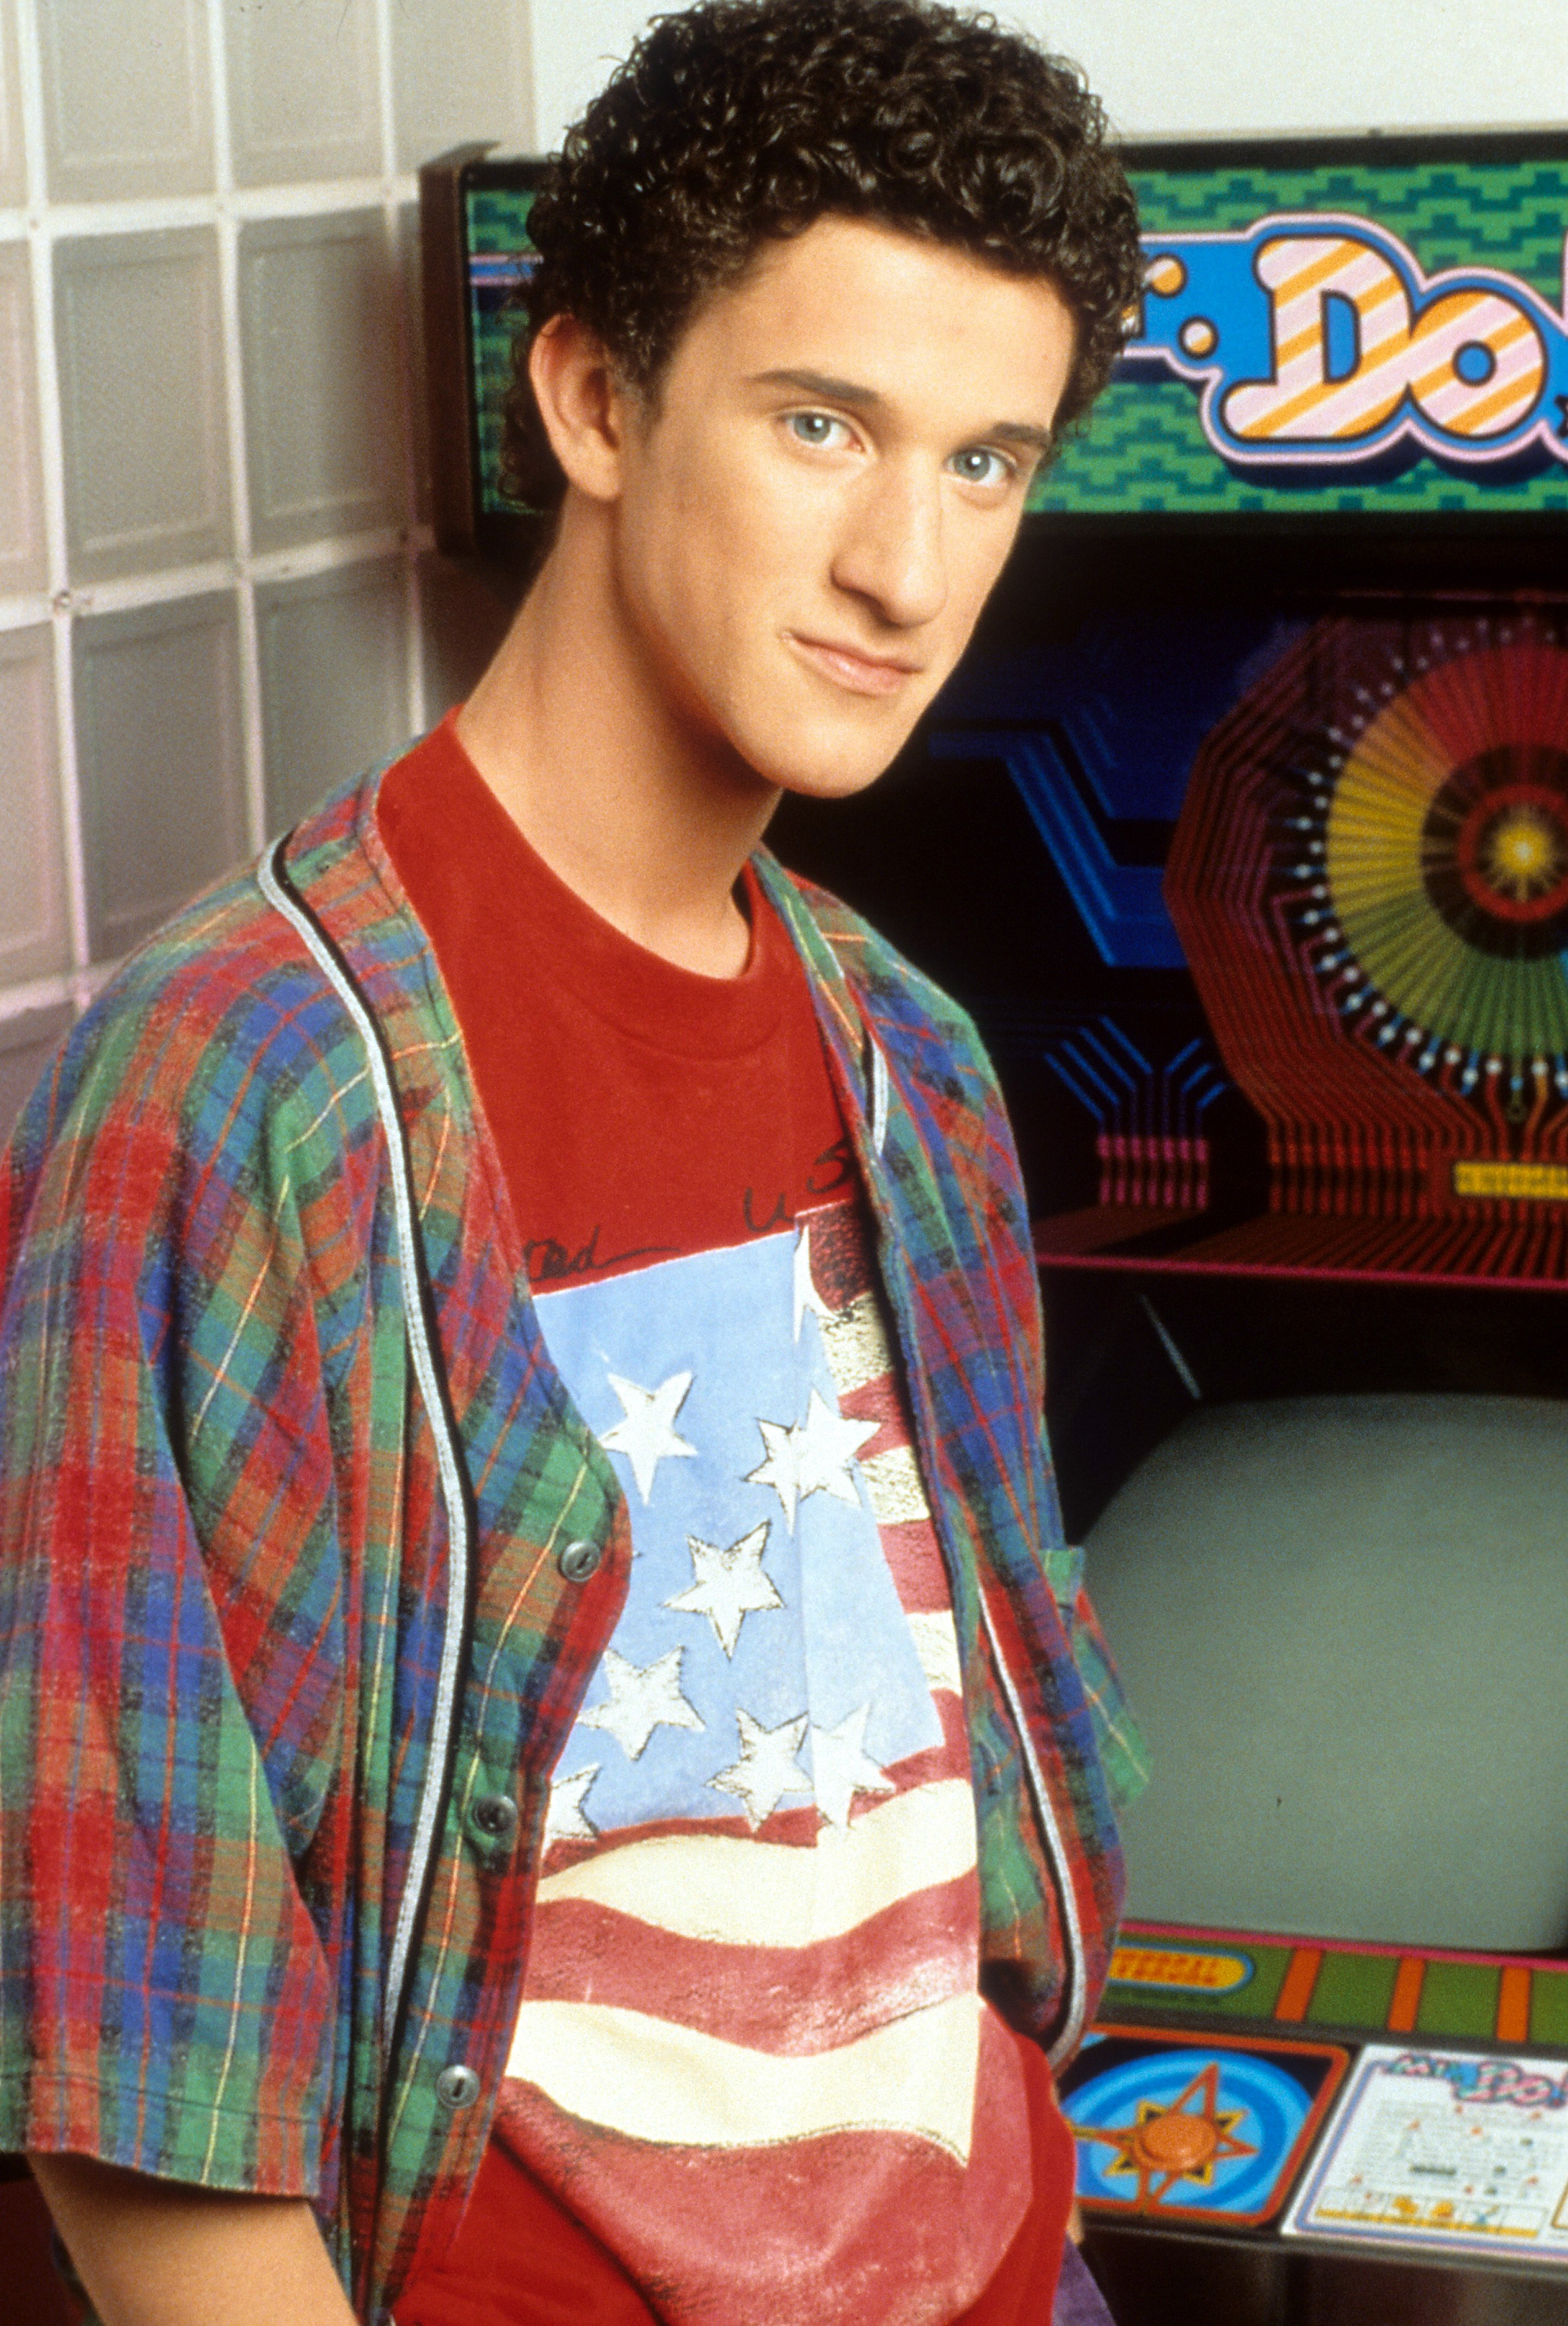 Dustin Diamond in publicity portrait for the television series 'Saved By The Bell', Circa 1991.   Source: Getty Images